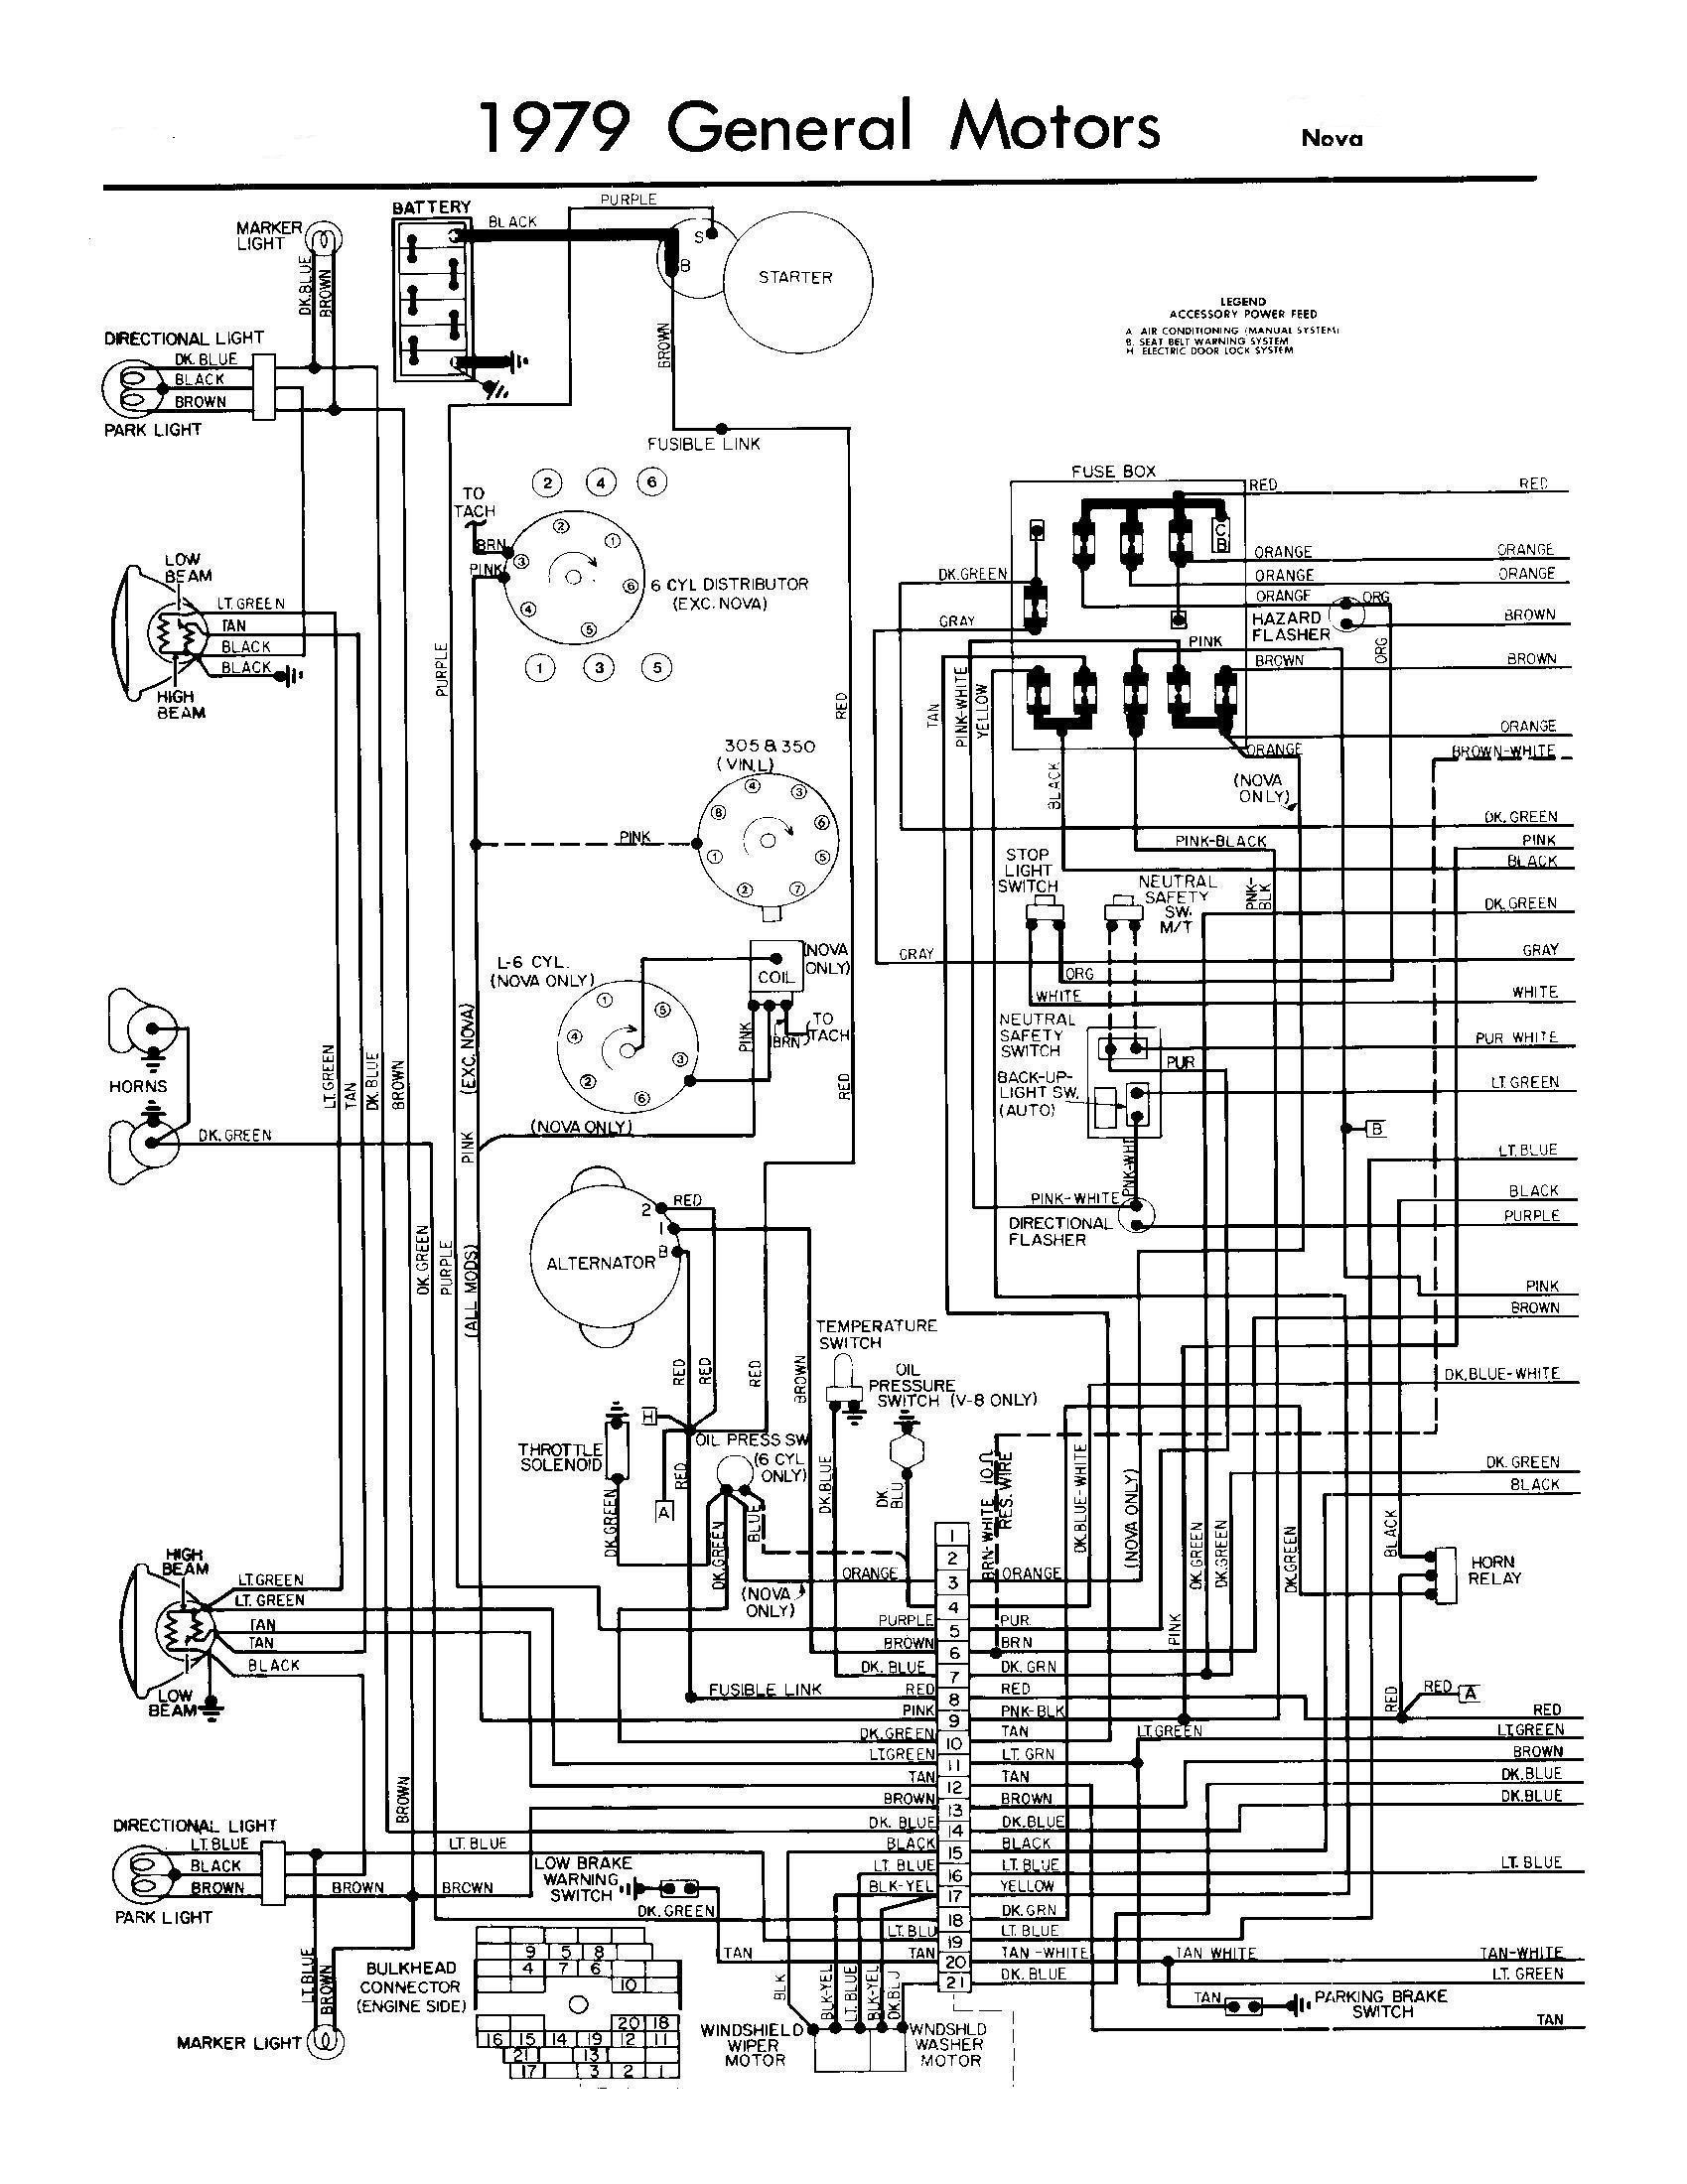 1979 Chevy Malibu Fuse Box Wiring Diagram Libraries 2010 For Diagrams Scematic1979 Library